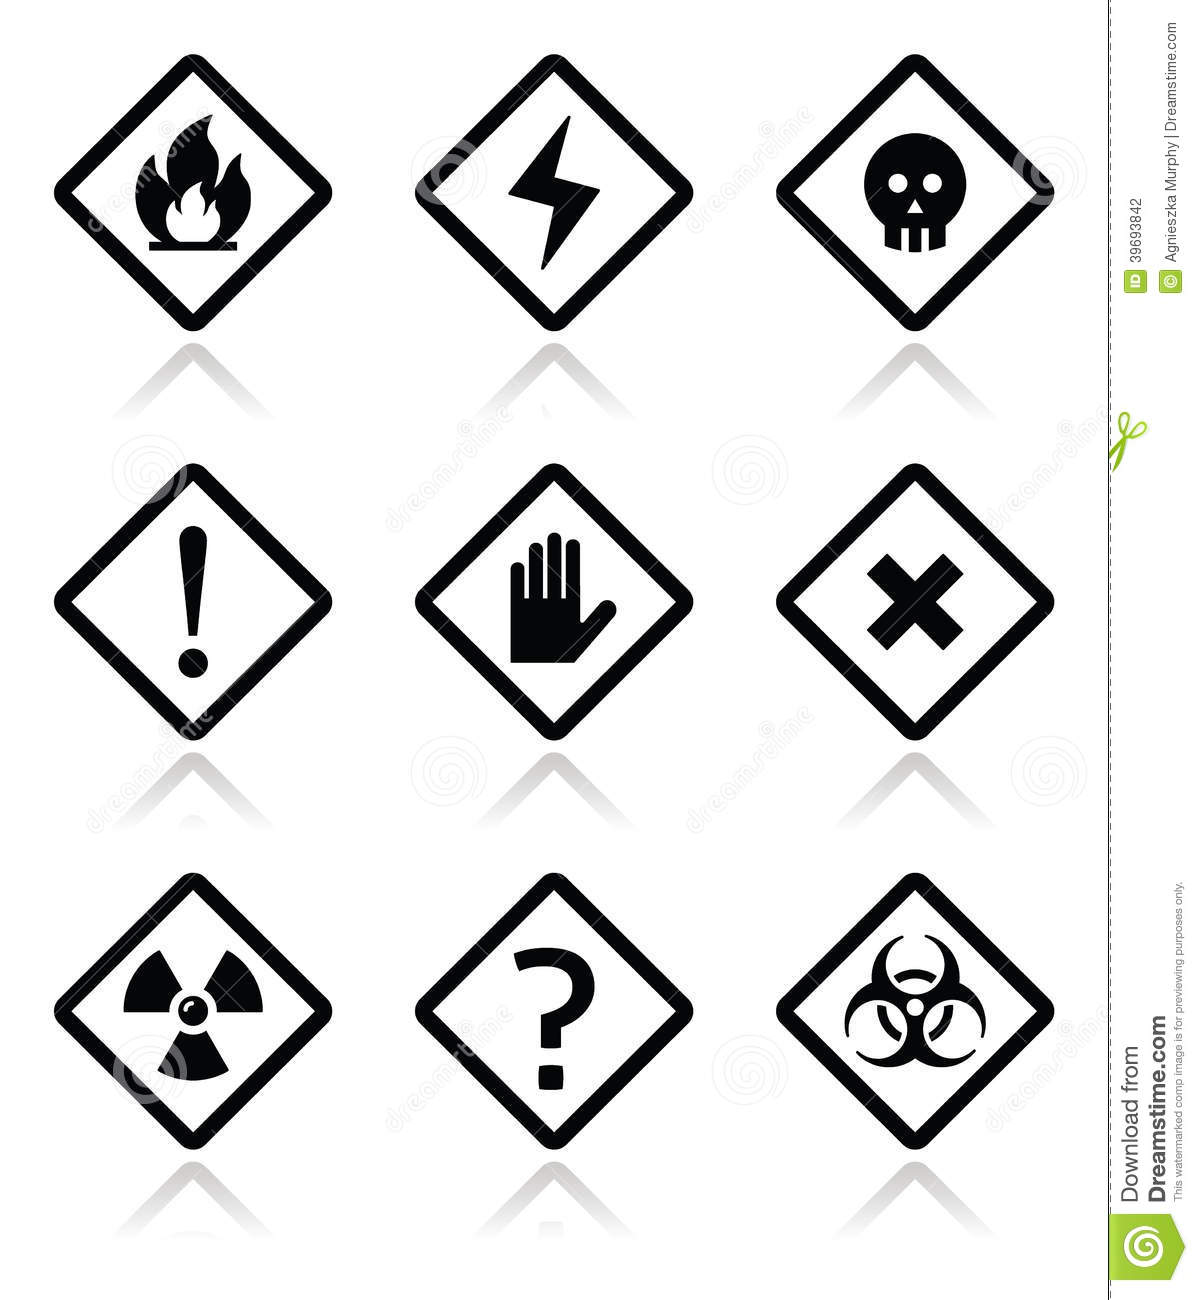 Danger Warning Attention Square Icons Set Stock Vector